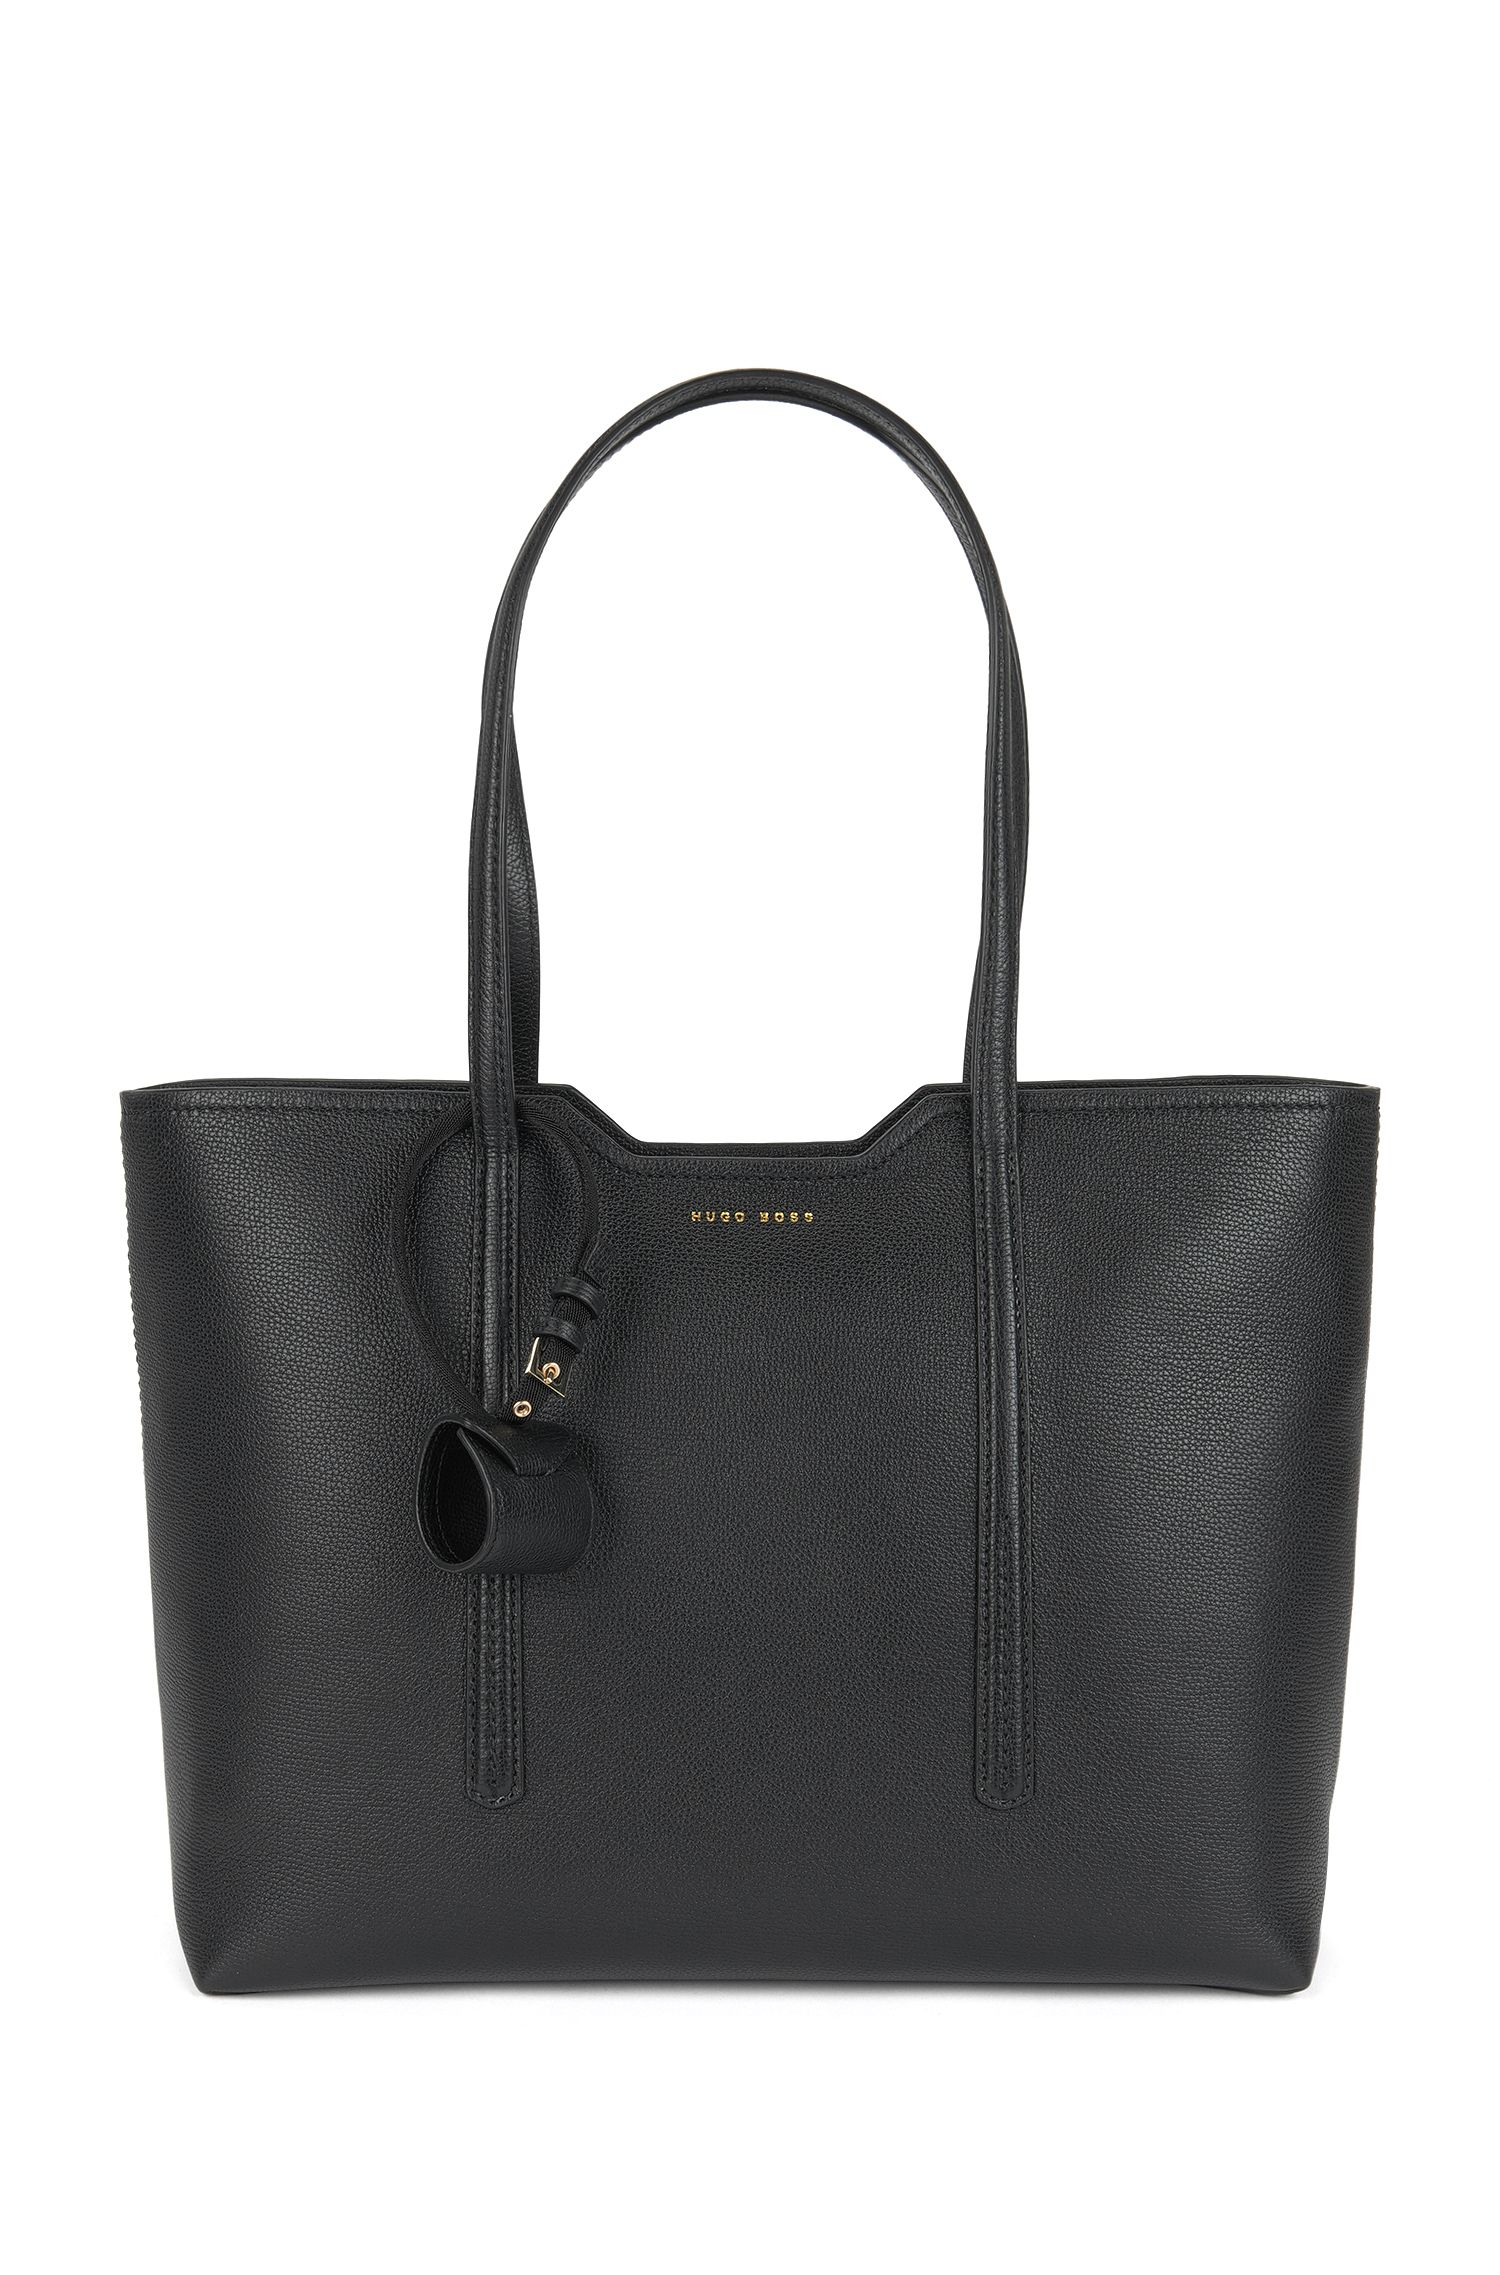 Full-Grain Leather Shopper Tote | Taylor Shopper